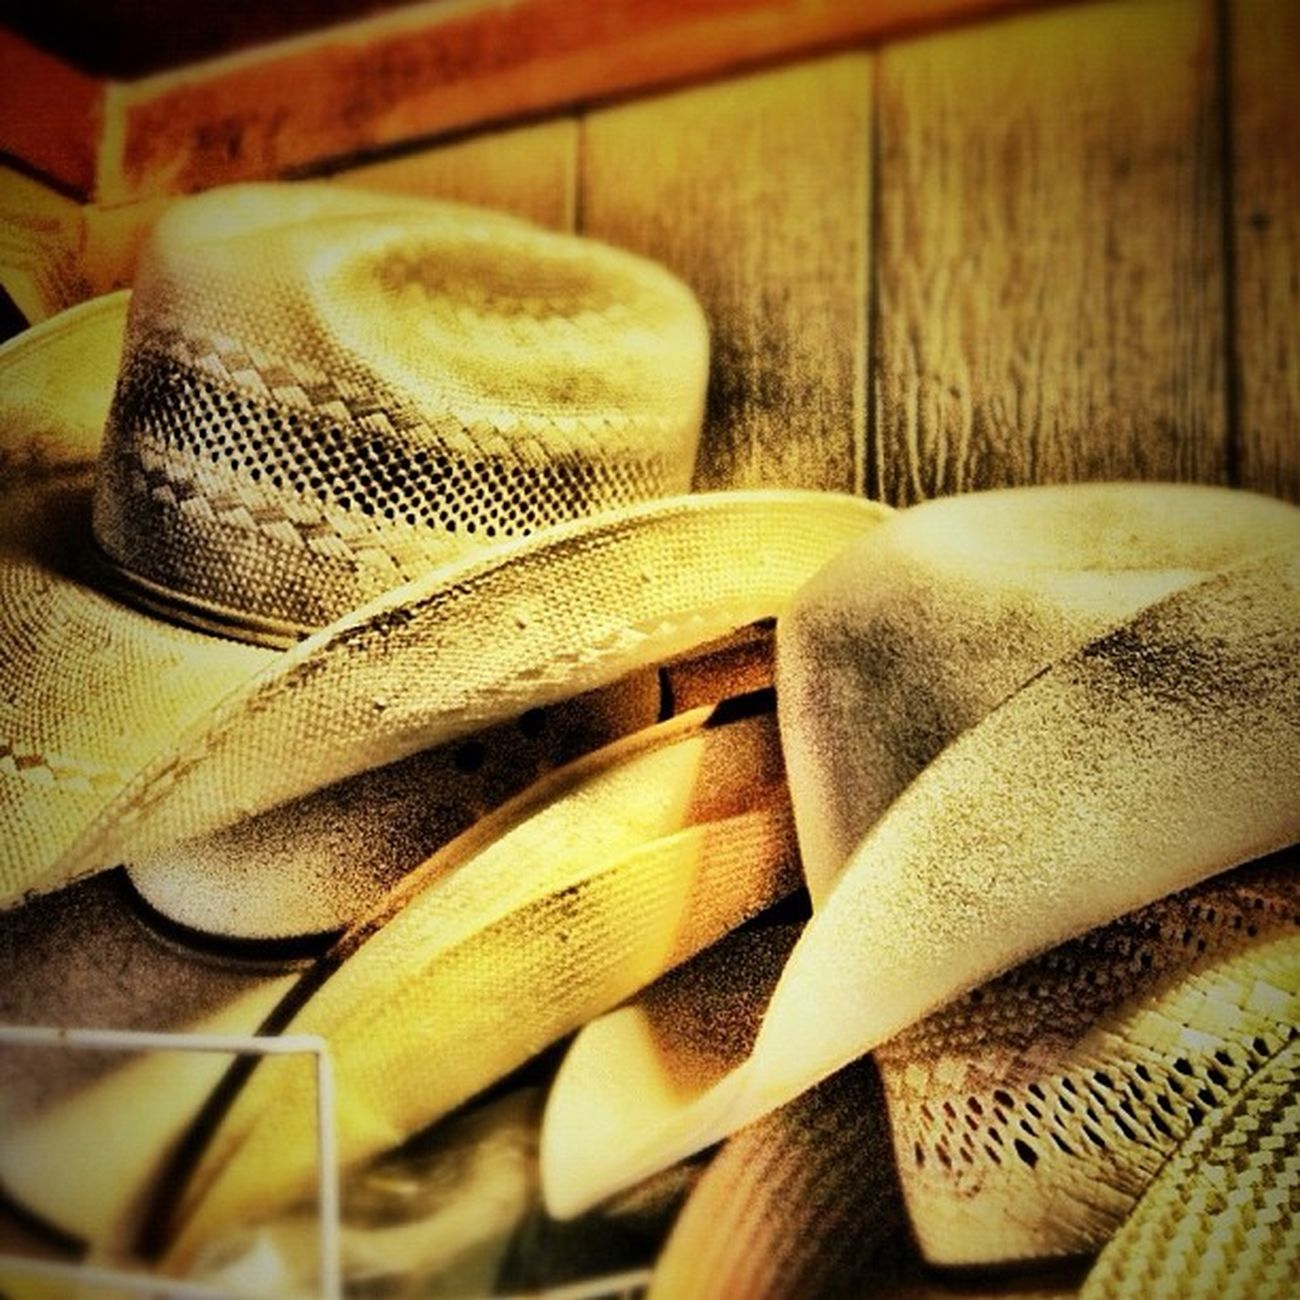 My Hats off to each and every one of you..Wishing you a Happy Friday. Cowboyhats Cinchhats Resistolhats polyhats felthats texaspride riograndevalleyigers